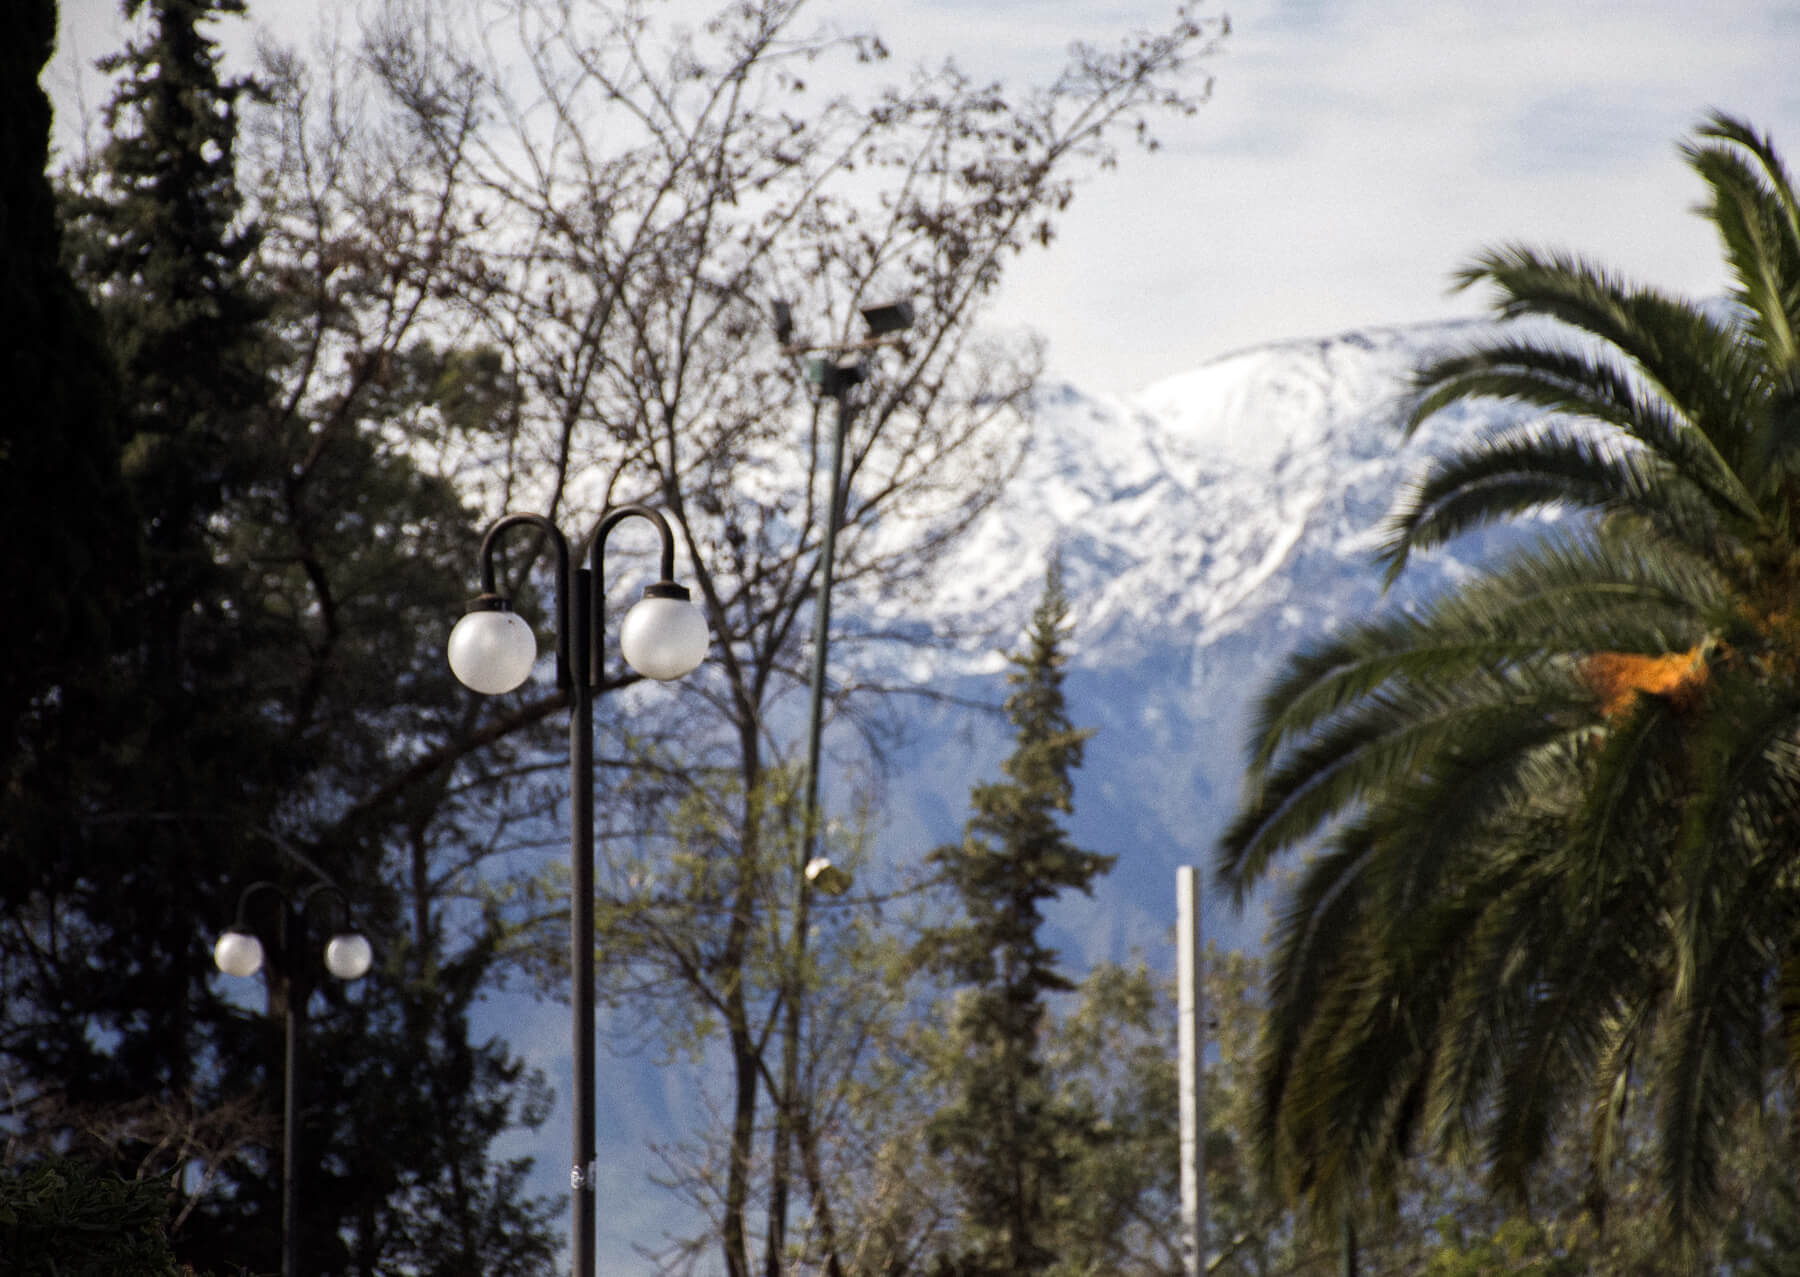 Rounded light posts with palm trees, pine trees and snowy mountains in the background